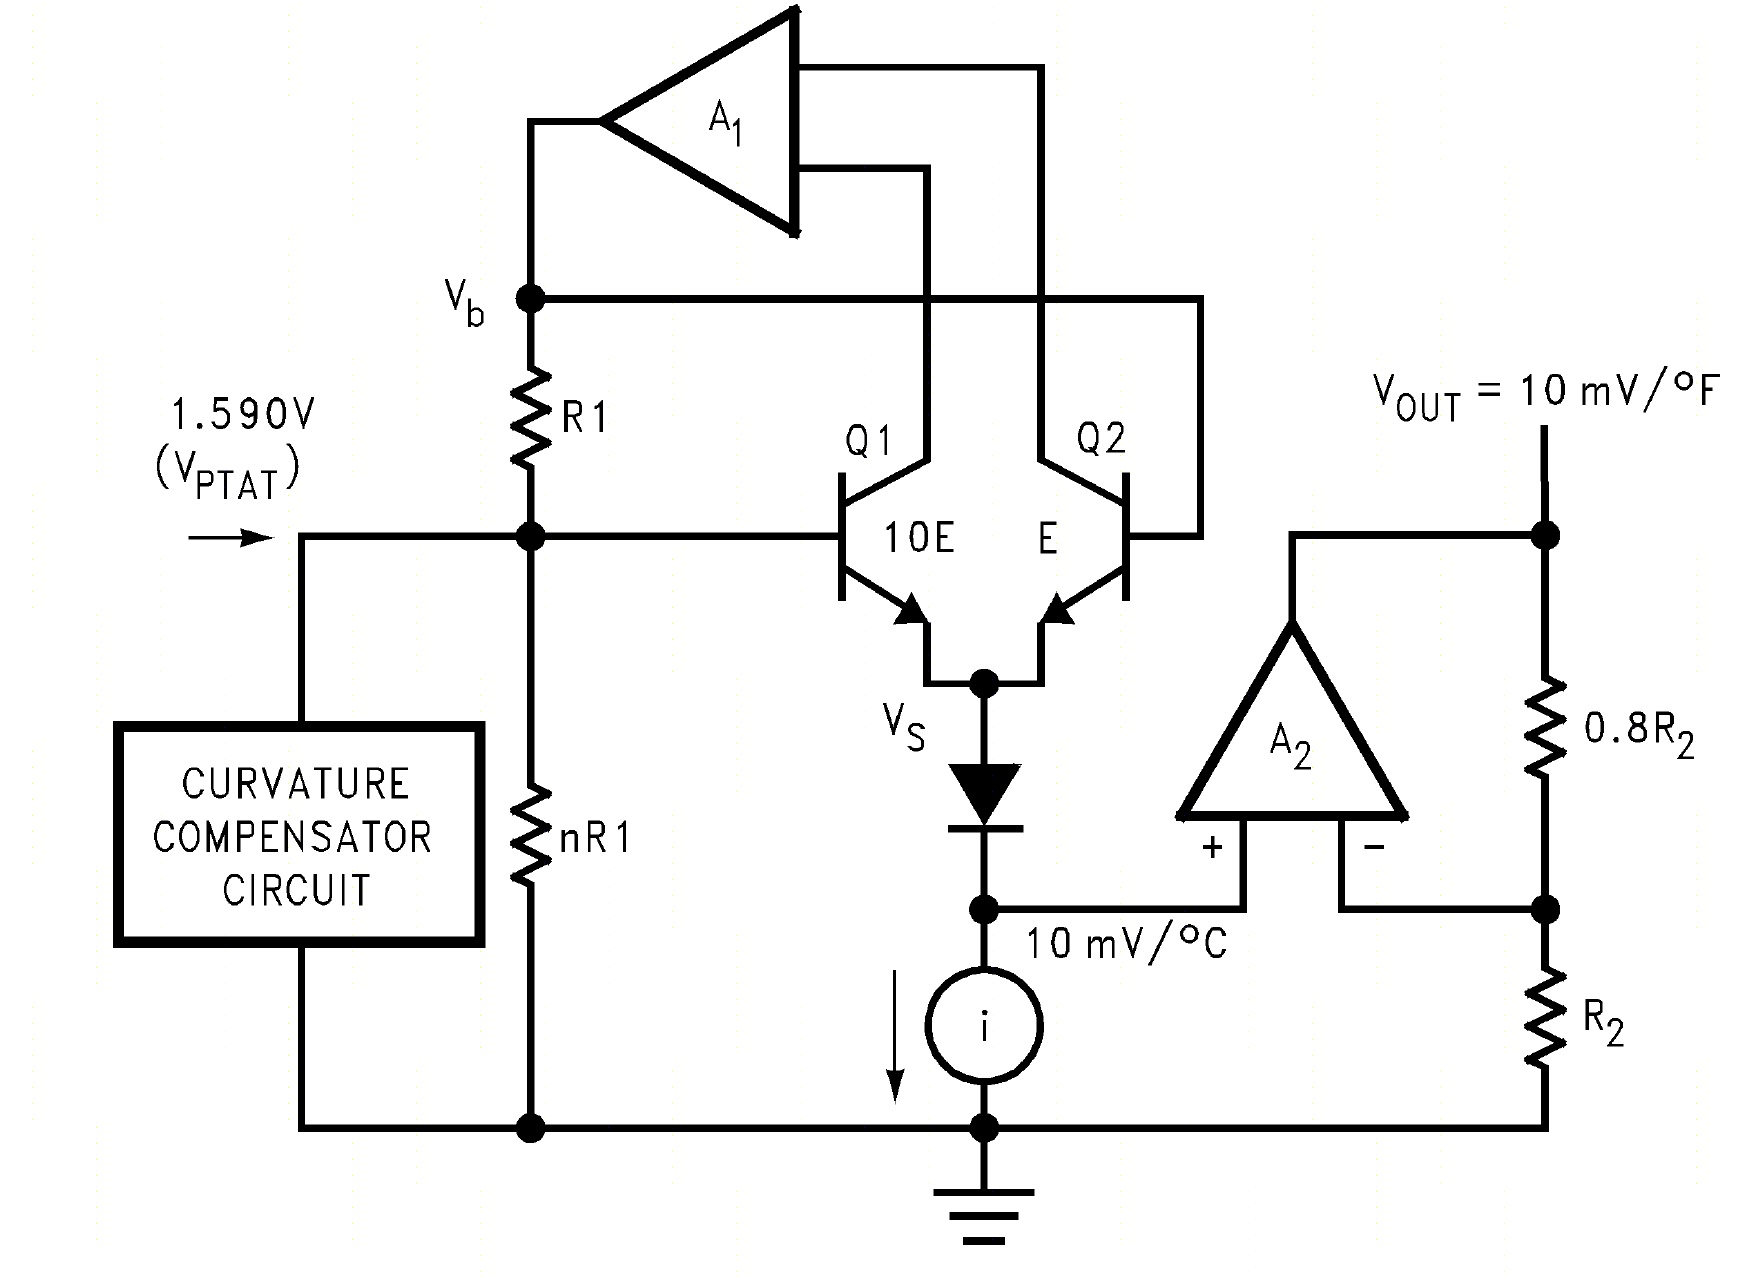 lm34_circuit_diagram chapter 10 computers and electronics homemade electronic How to Draw a Wiring Diagram ECE at panicattacktreatment.co